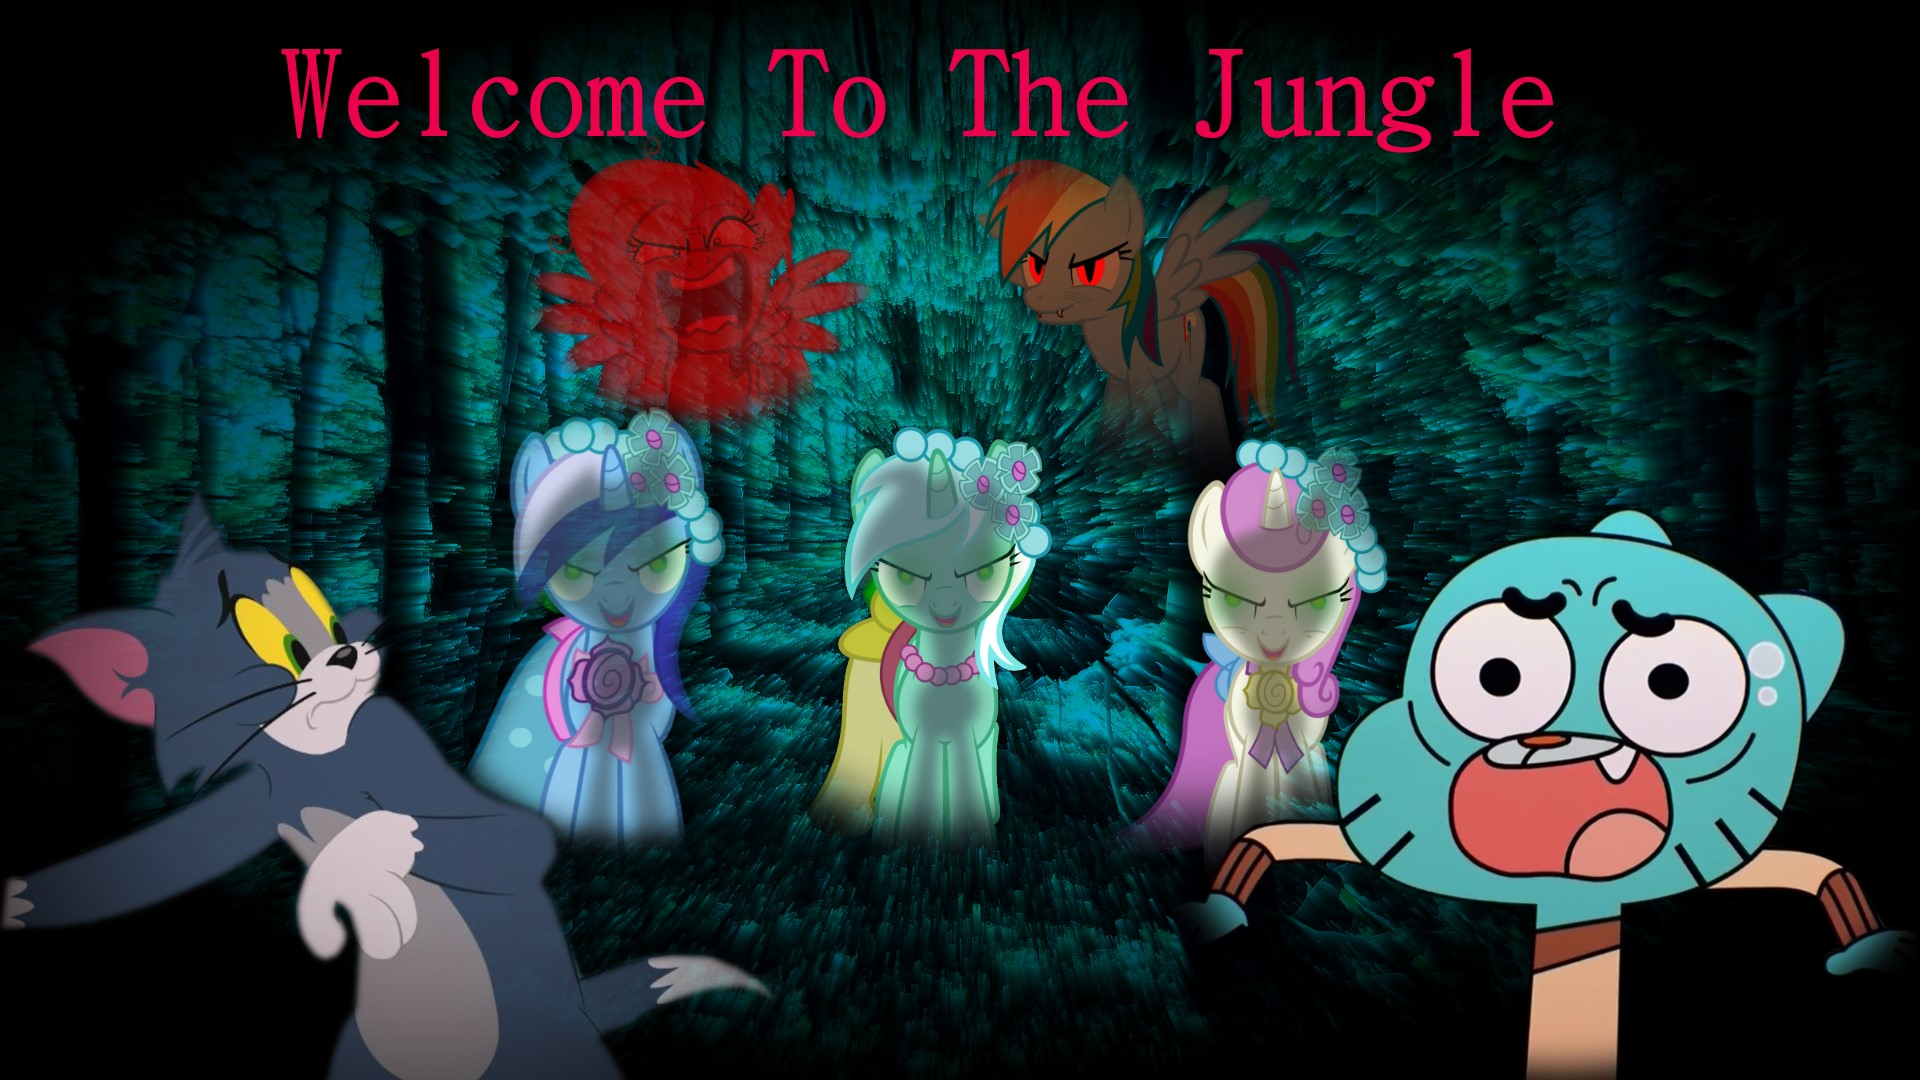 Welcome To The Jungle Wallpaper Theme by edisonyeejia on ...